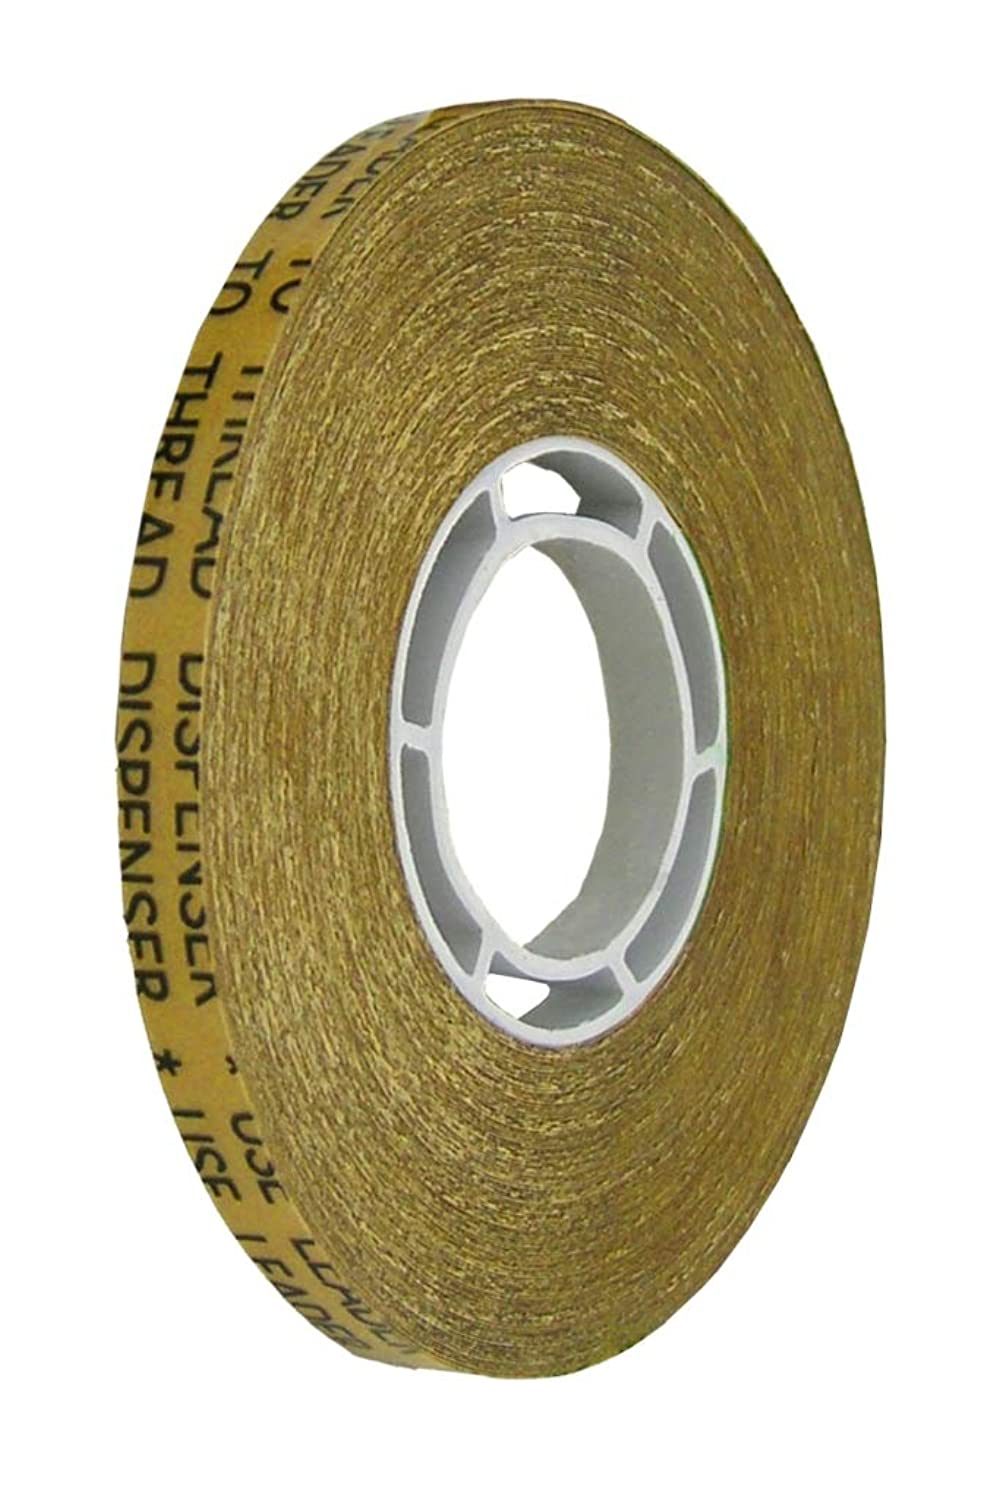 ALLTAPESDEPOT, ATG-7502 REVERSE WOUND ADHESIVE TRASFER TAPES GENERAL PURPOSE, ACID FREE GOLD LINER 1/4